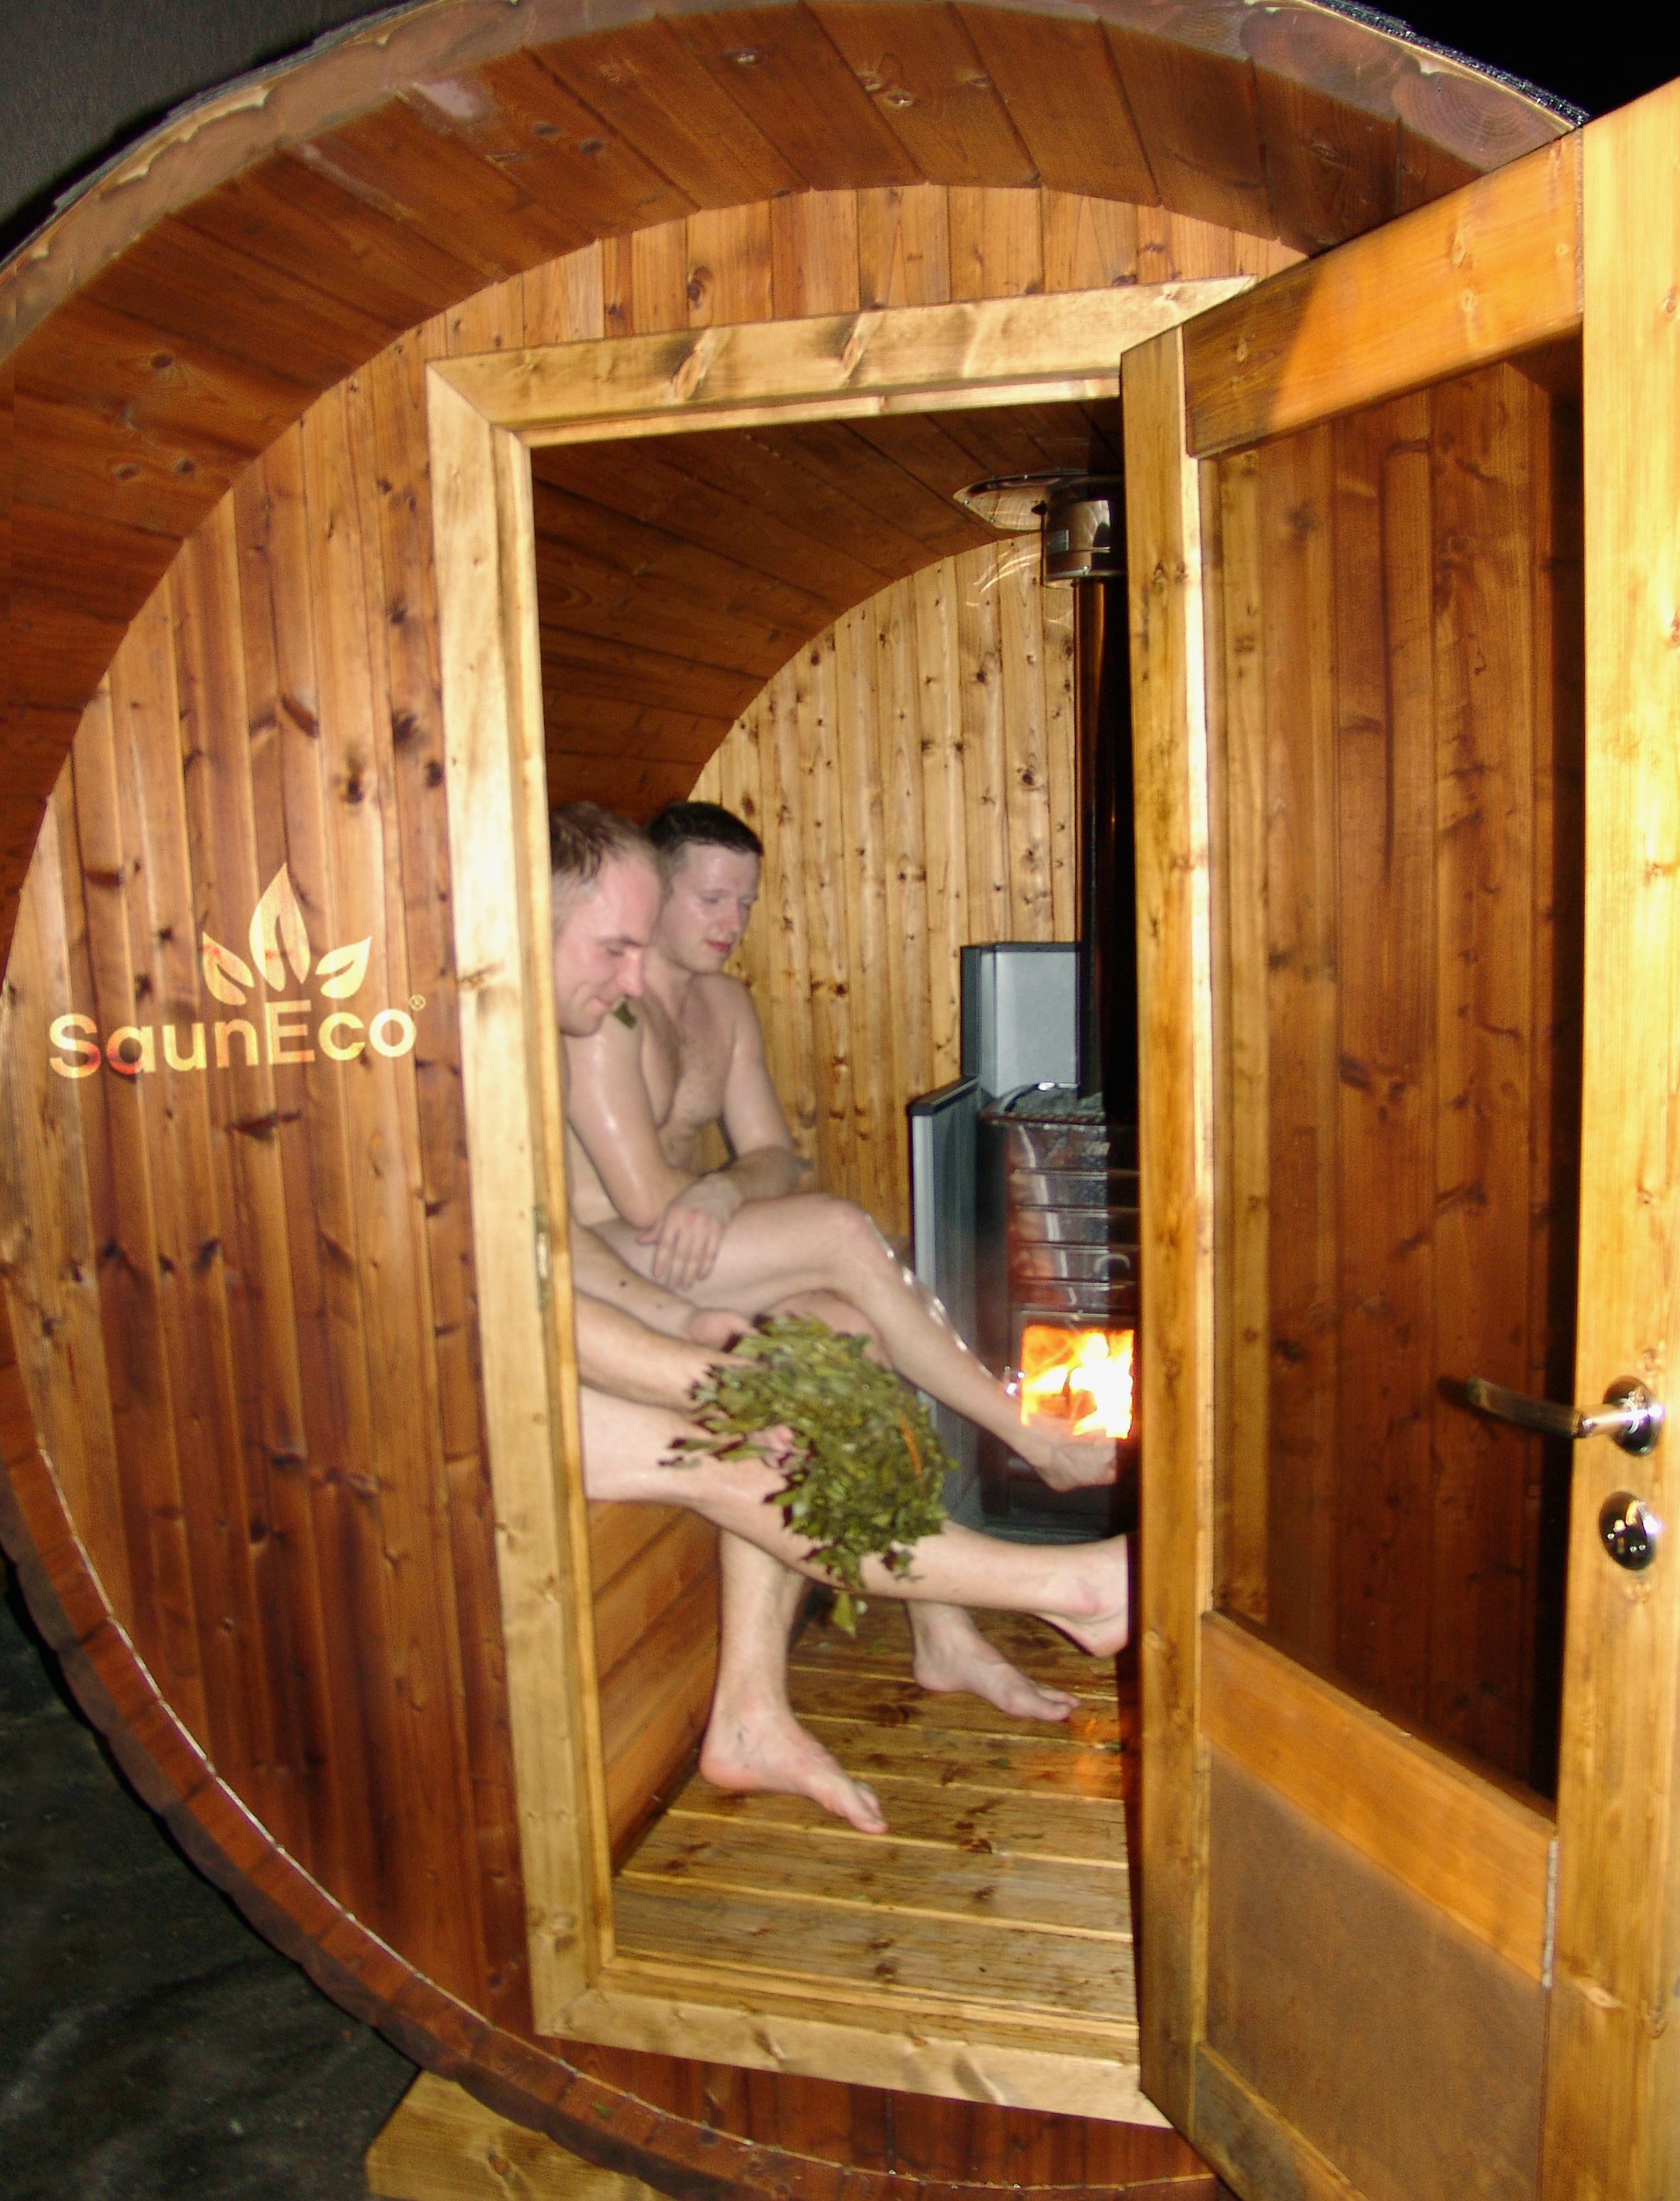 Sauna In The Home 17 Outstanding Ideas That Everyone Need: Nordic Sauna Experience